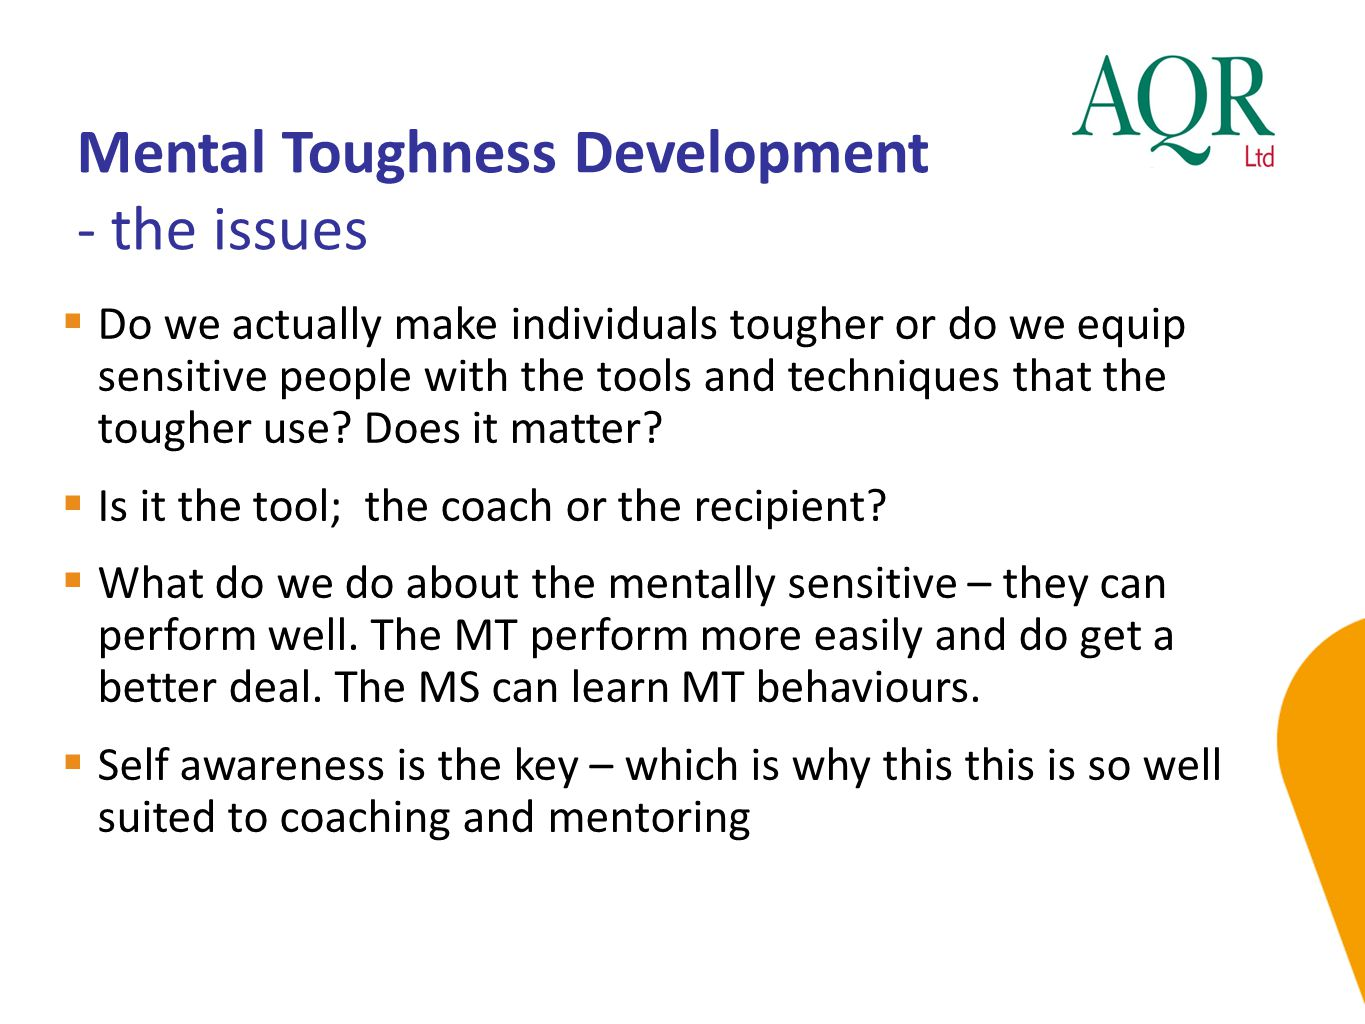 Mental Toughness Development - the issues